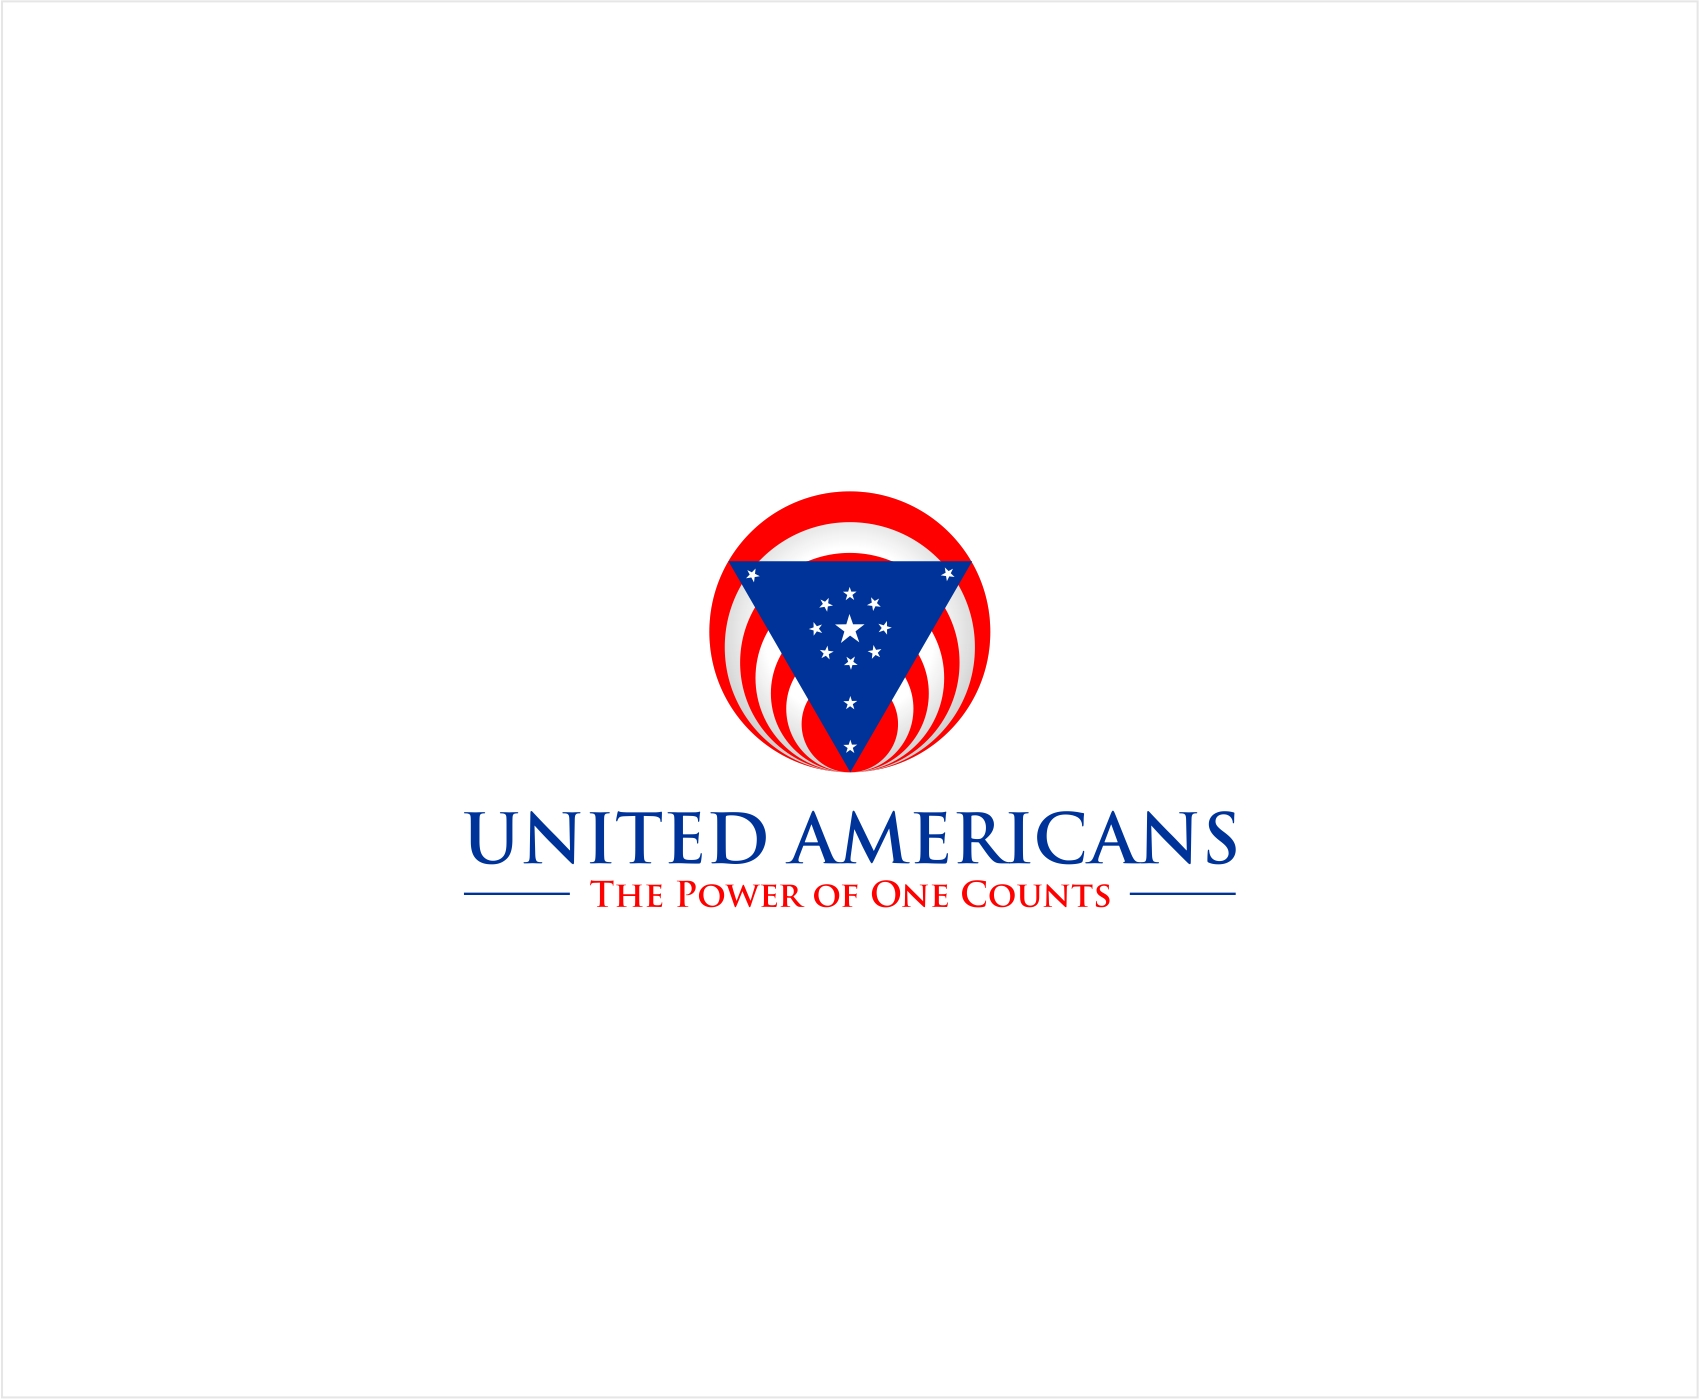 Logo Design by haidu - Entry No. 51 in the Logo Design Contest Creative Logo Design for United Americans.